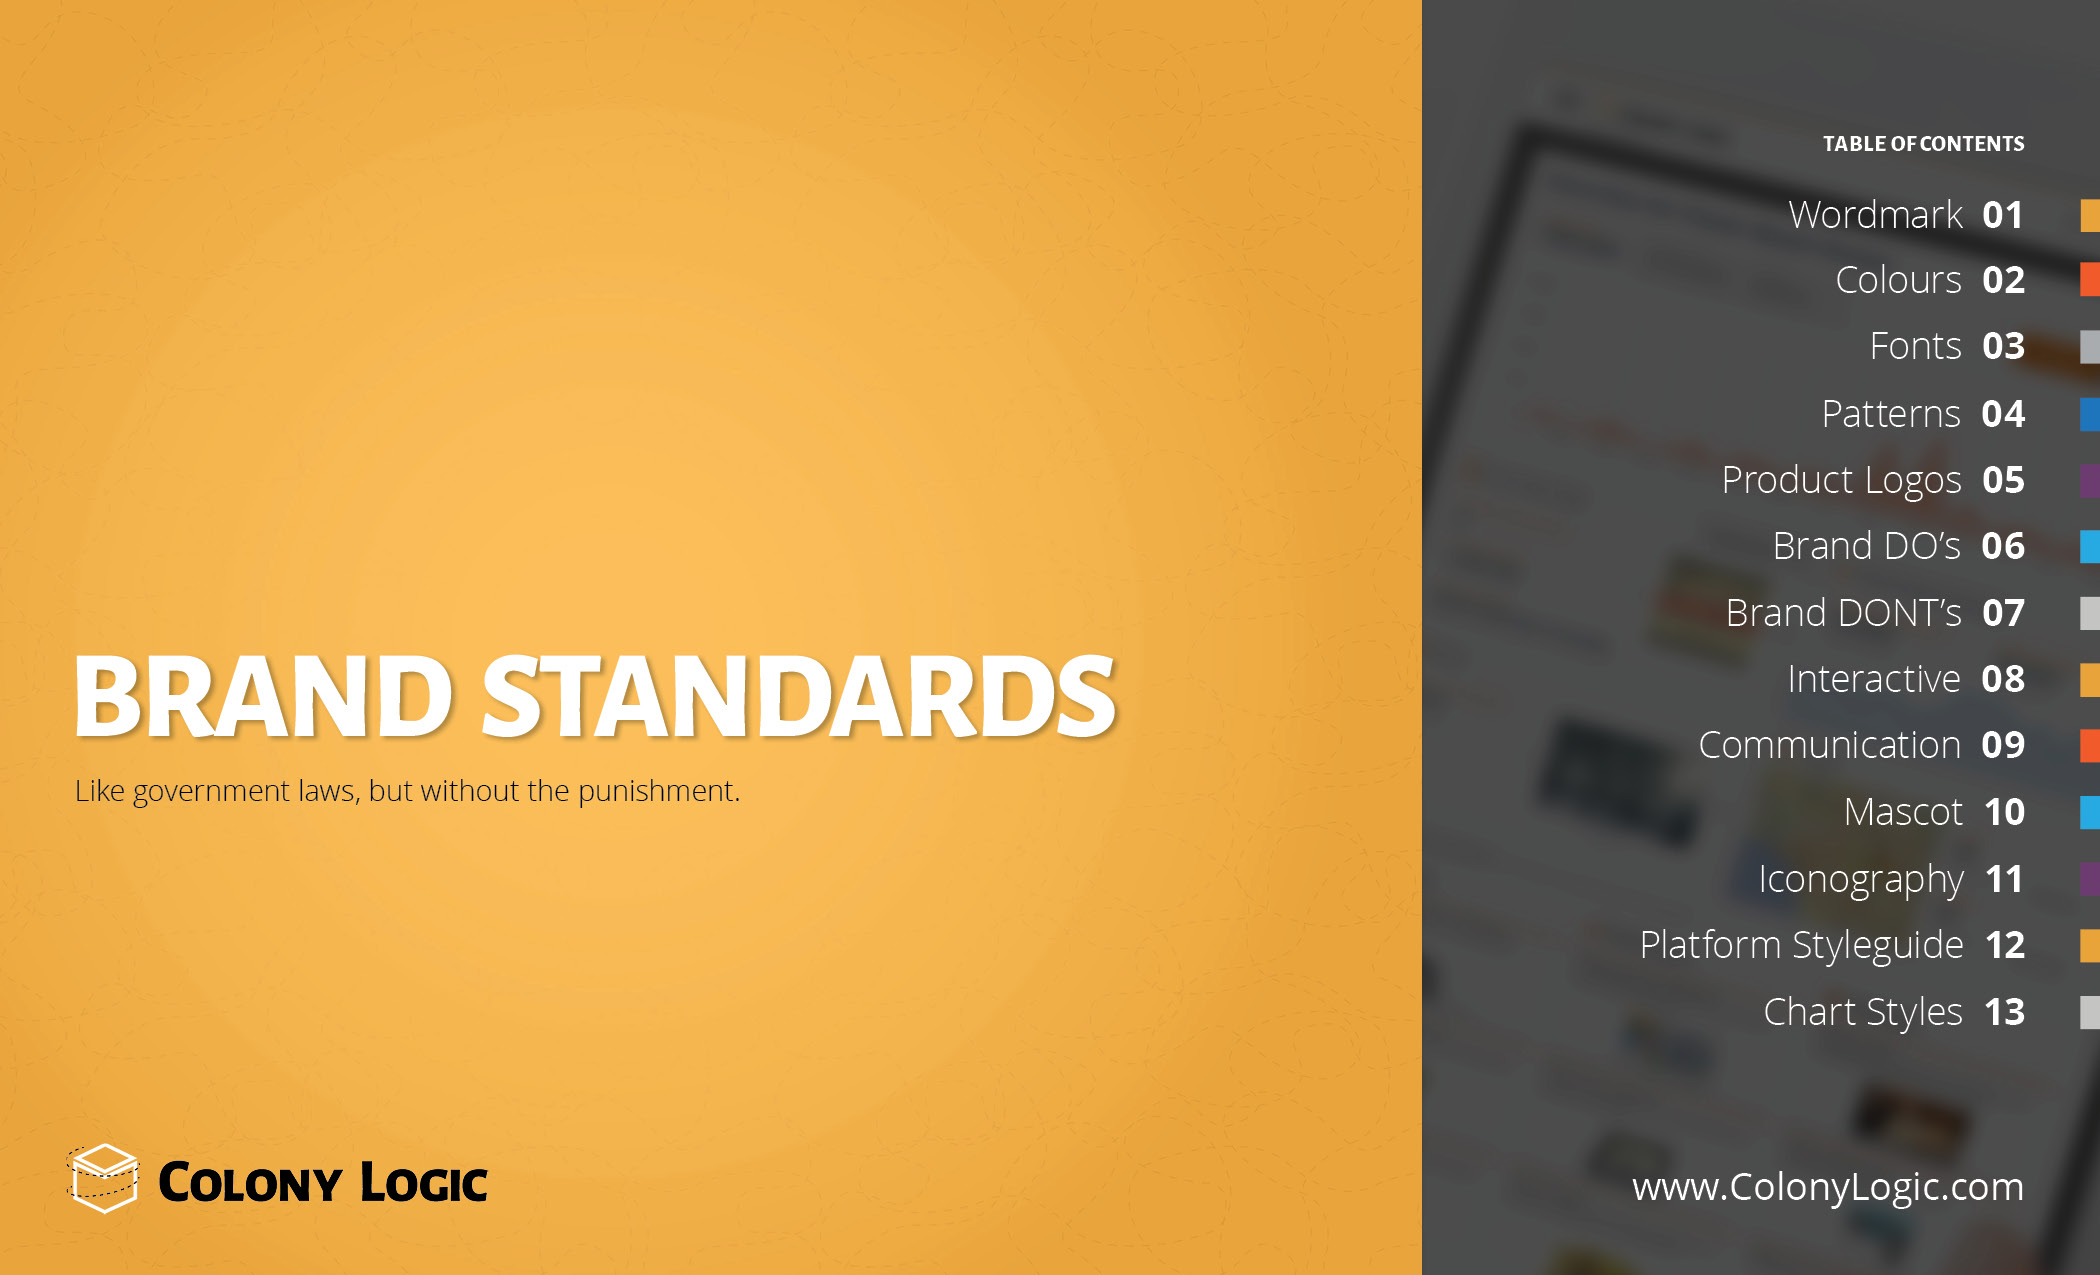 COLONY LOGIC BRAND GUIDELINES